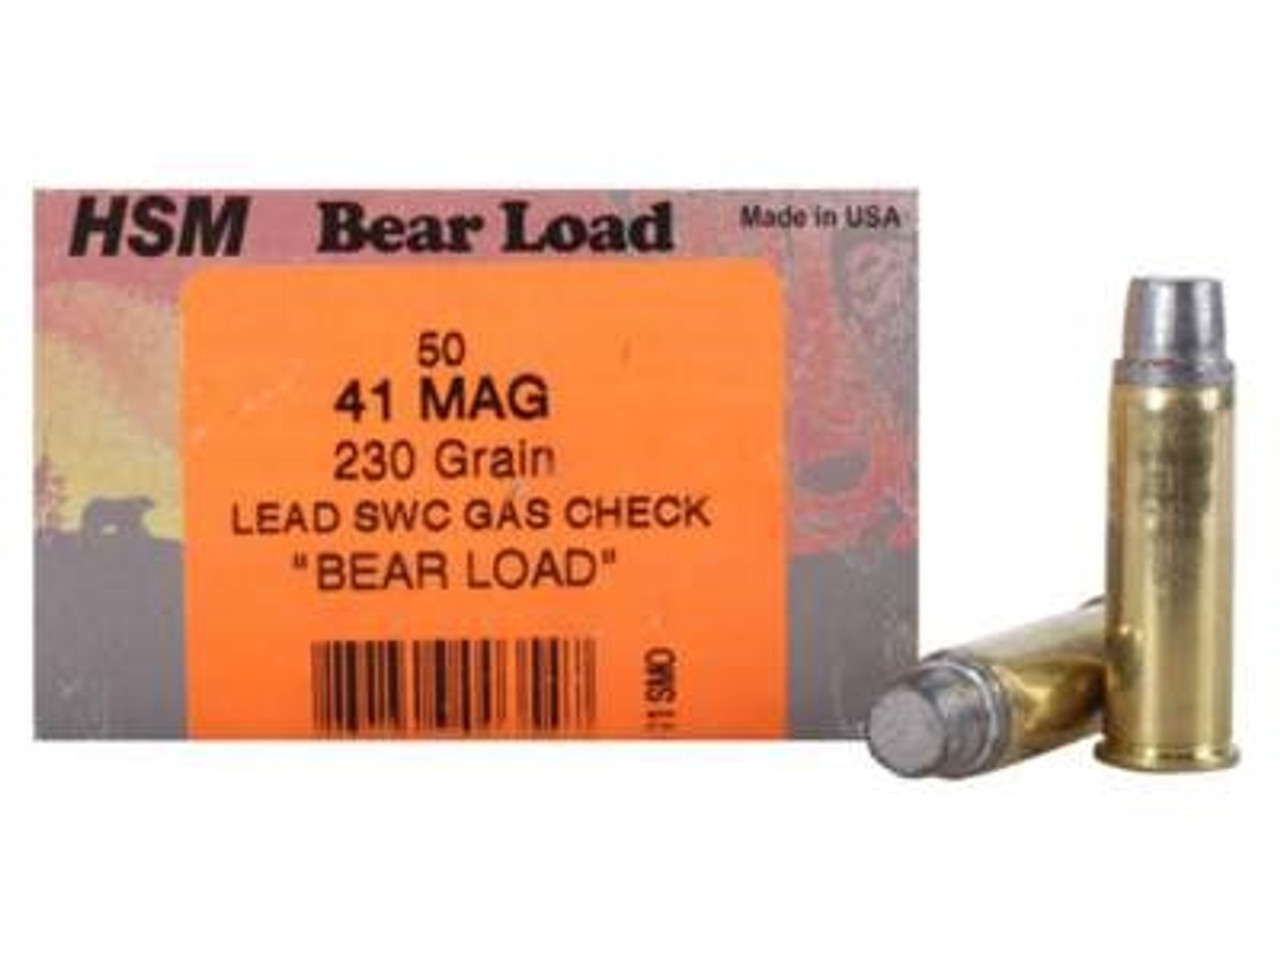 HSM 41 Rem Mag Bear Load 230 gr Semi-Wadcutter Gas Check 50 rounds